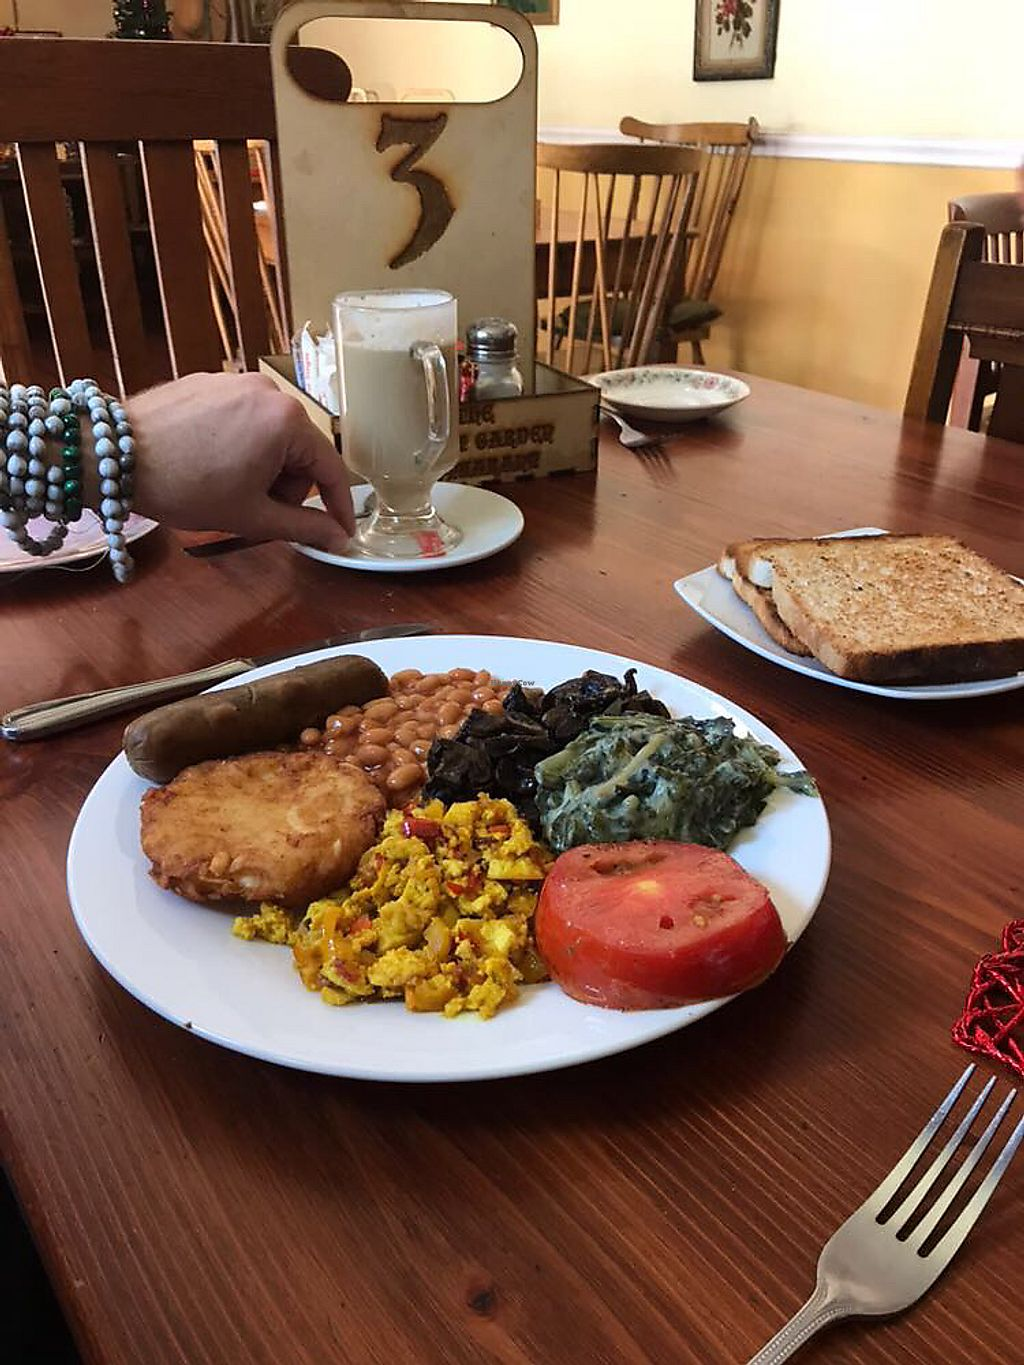 "Photo of The Secret Garden  by <a href=""/members/profile/Veganmuscle"">Veganmuscle</a> <br/>Vegan Breakfast <br/> December 31, 2017  - <a href='/contact/abuse/image/94231/341478'>Report</a>"